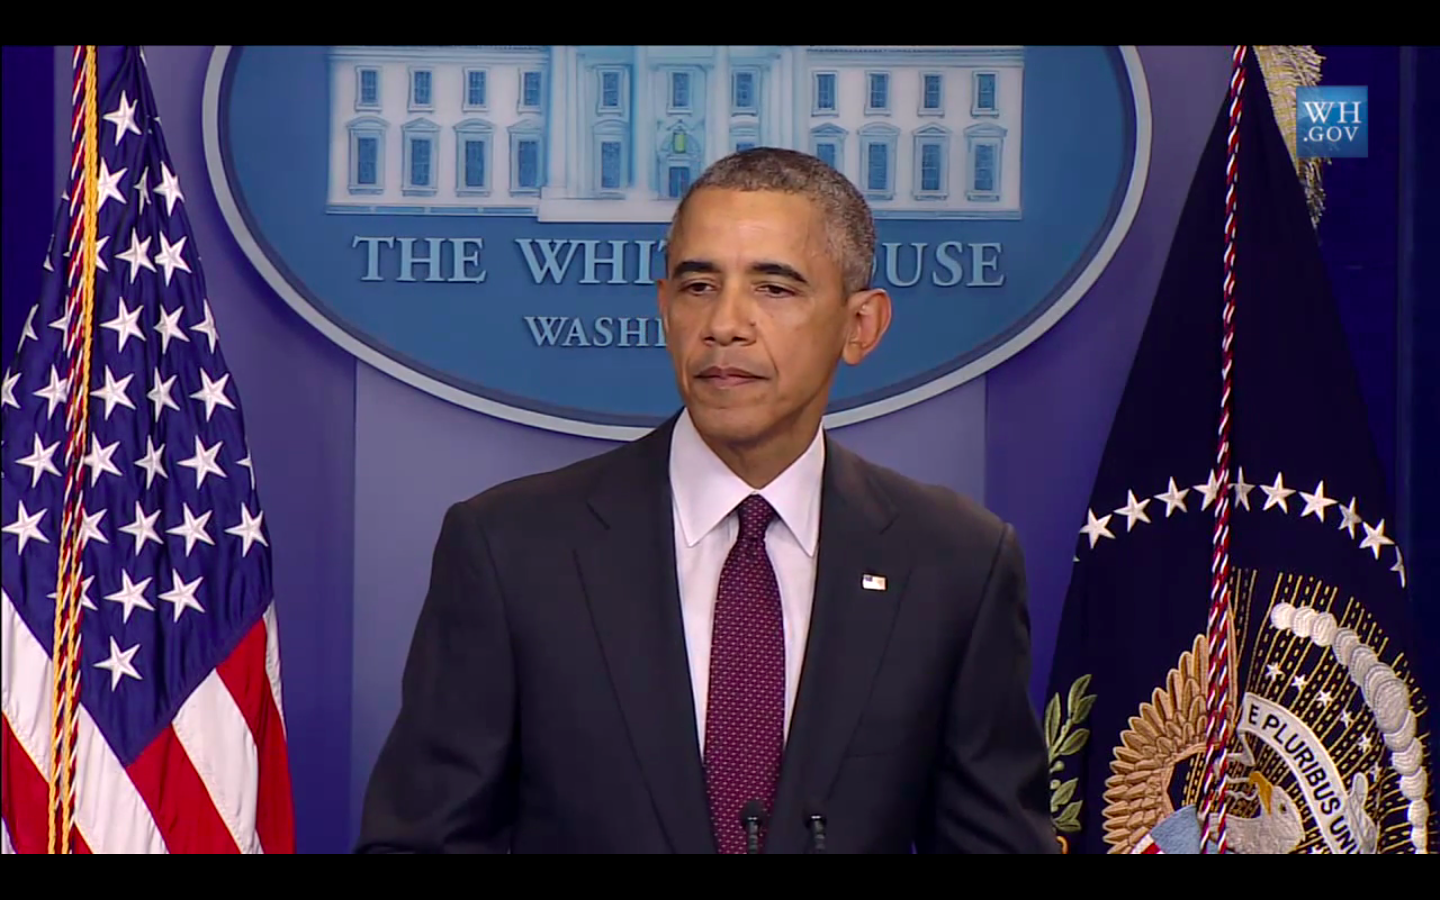 President Obama speaks in response to the UCC shooting